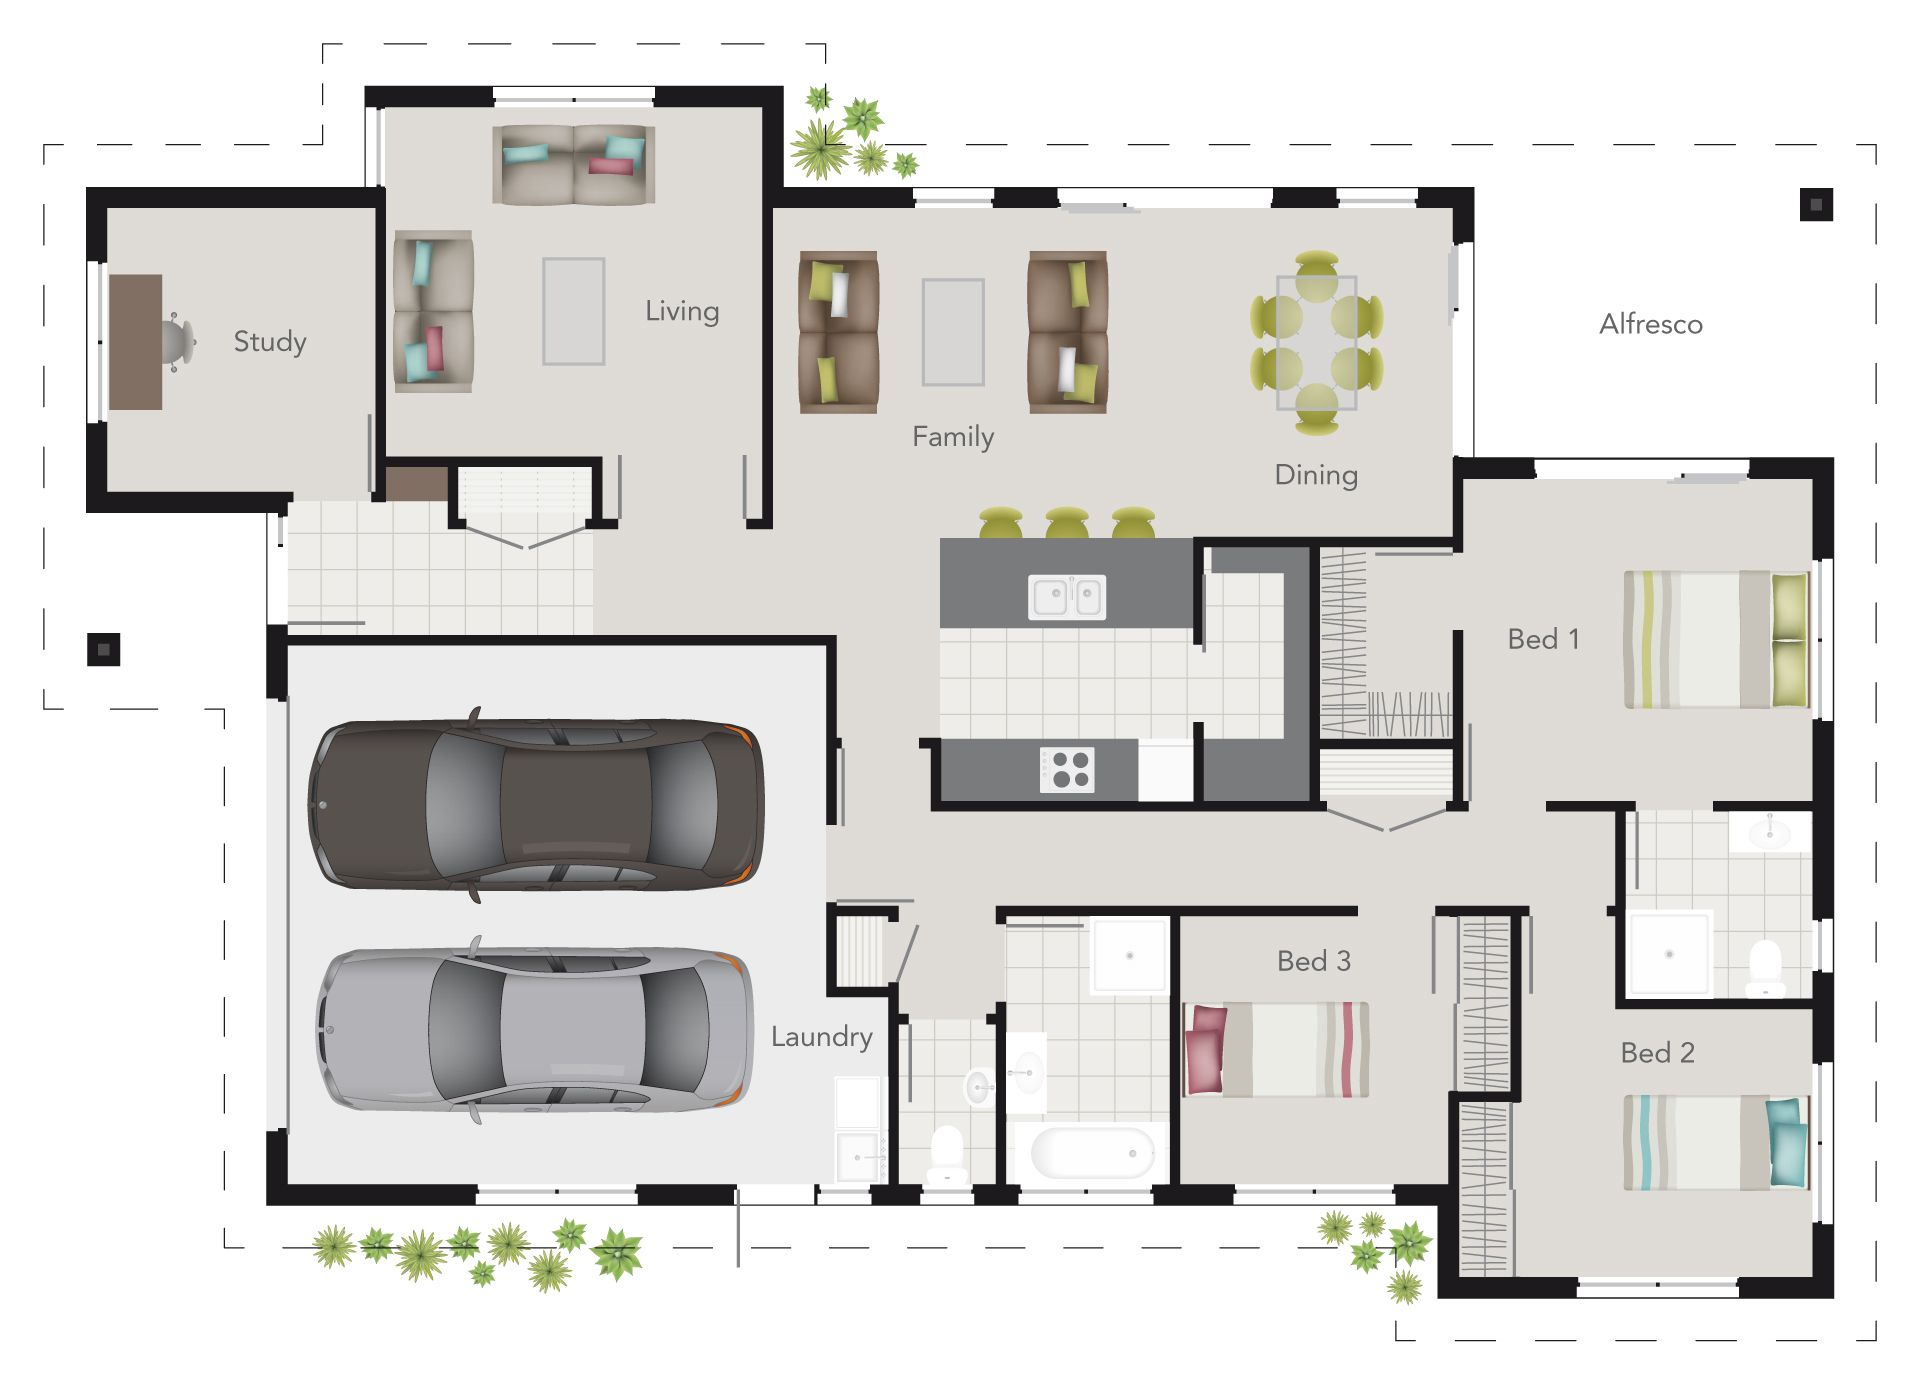 G j gardner wright plan 3 bedroom floor plan with study for House plans with media room